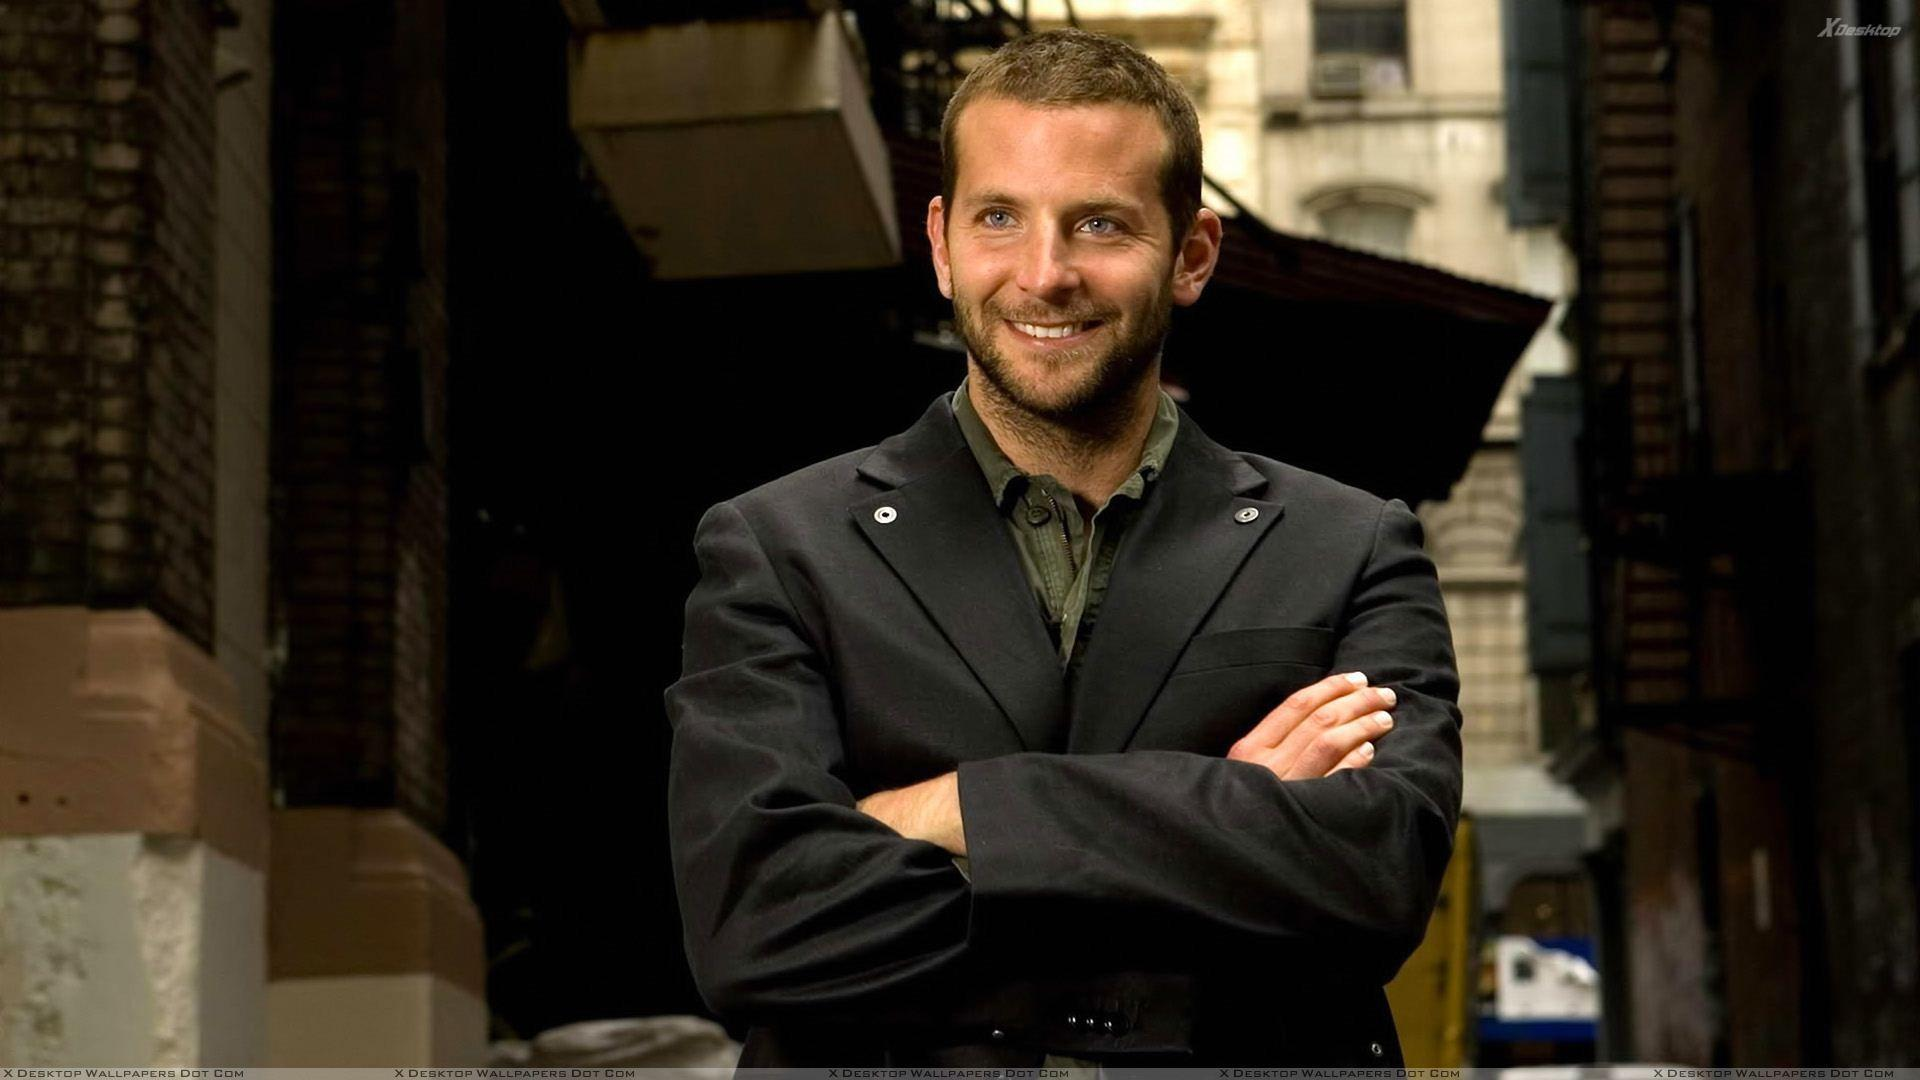 Bradley Cooper Wallpapers, Photos & Image in HD